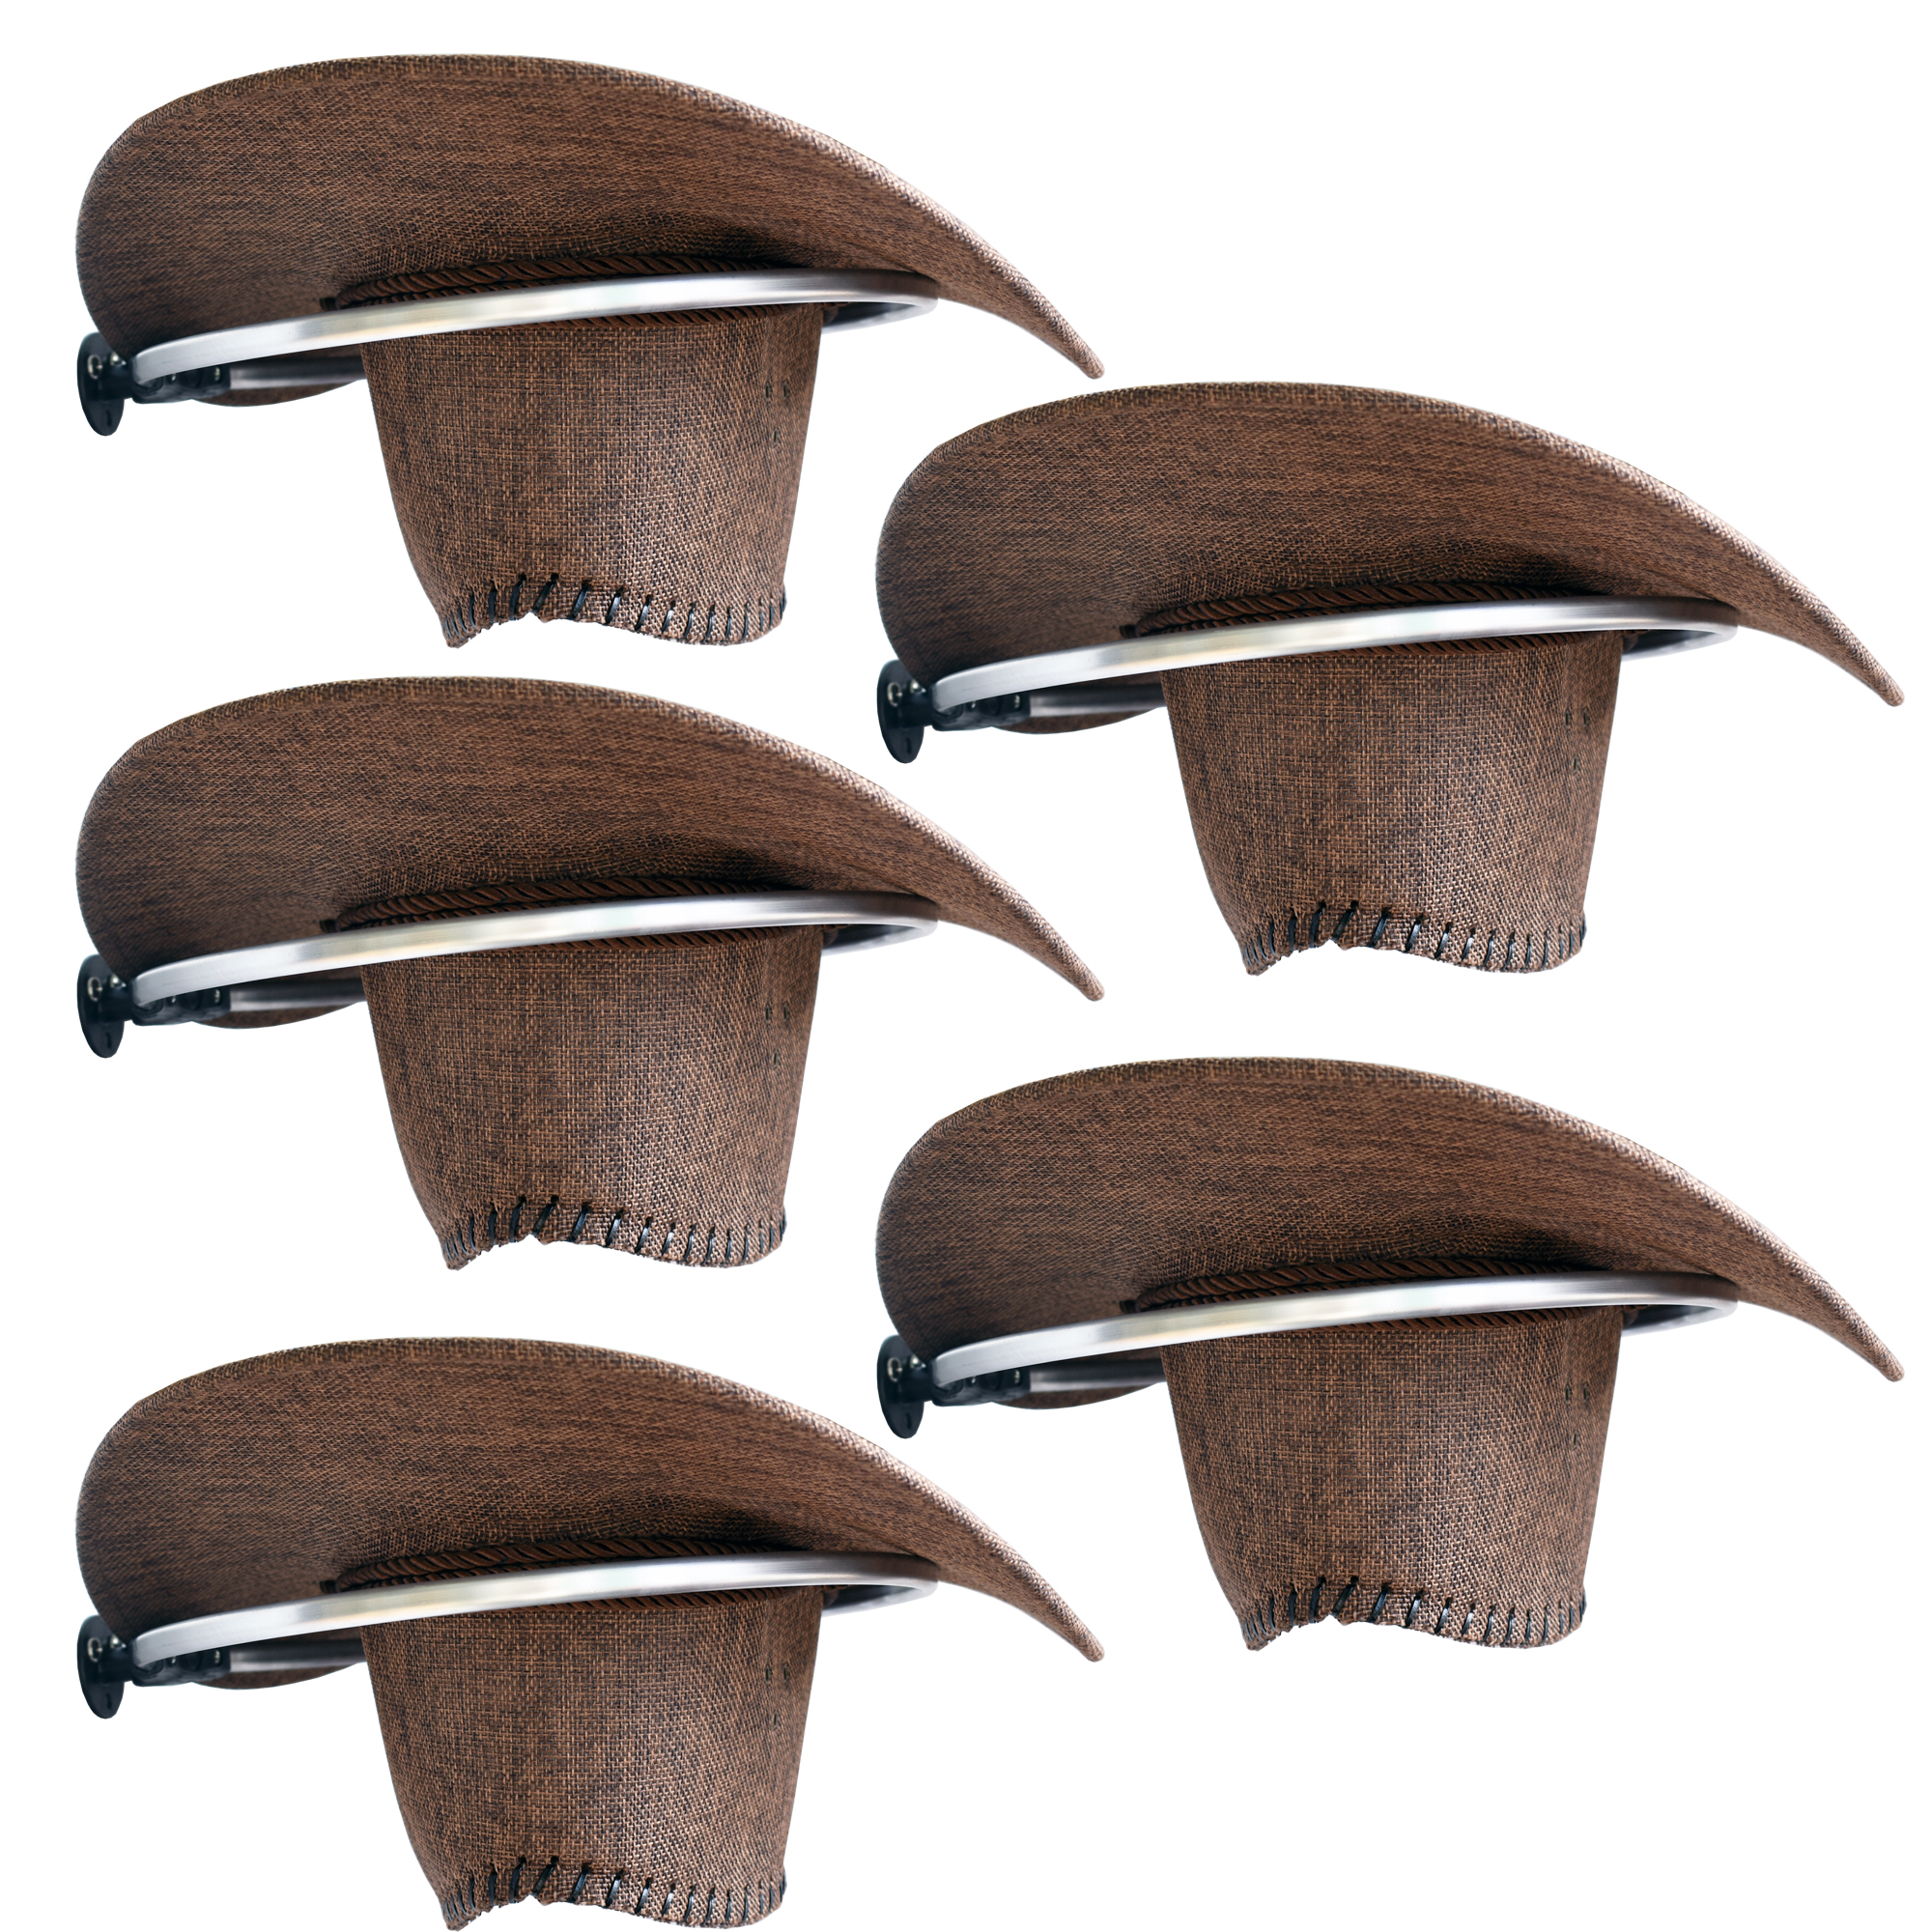 Cowboy Hat Rack Cowboy Hat Holder Organizer 5/PK - No Falling - Big Round RackCowboy Hat Rack Cowboy Hat Holder Organizer 5/PK - No Falling - Big Round Rack